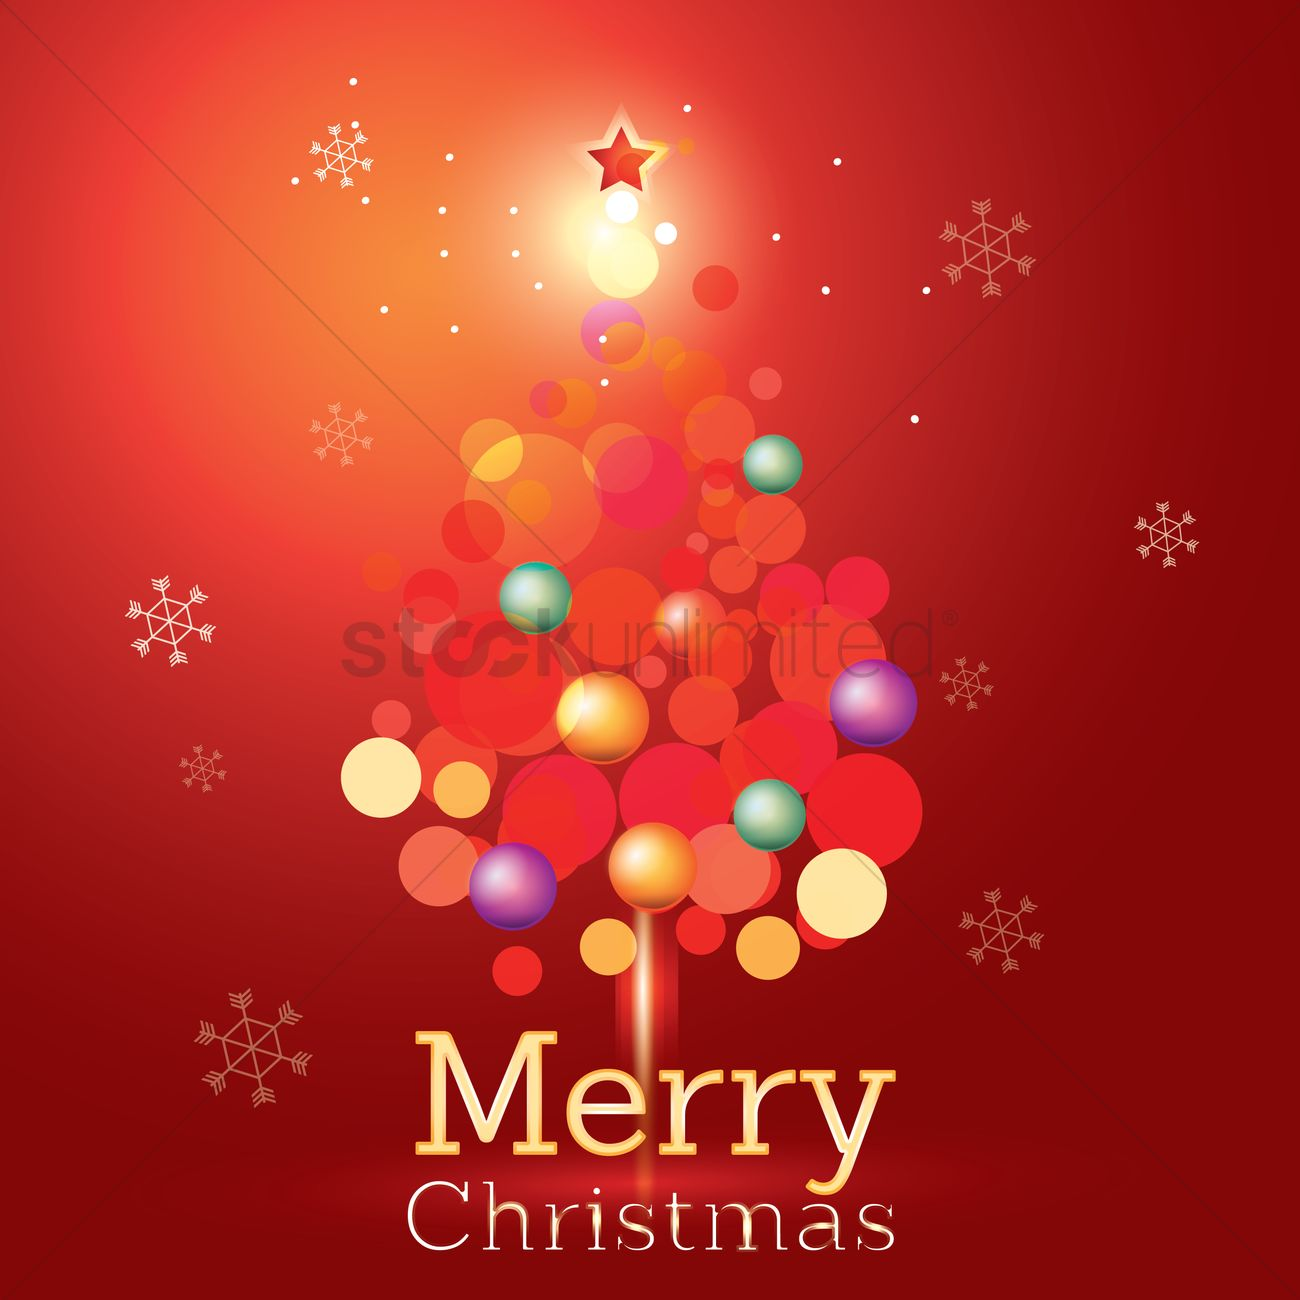 merry christmas wallpaper vector image 1815440 stockunlimited merry christmas wallpaper vector image